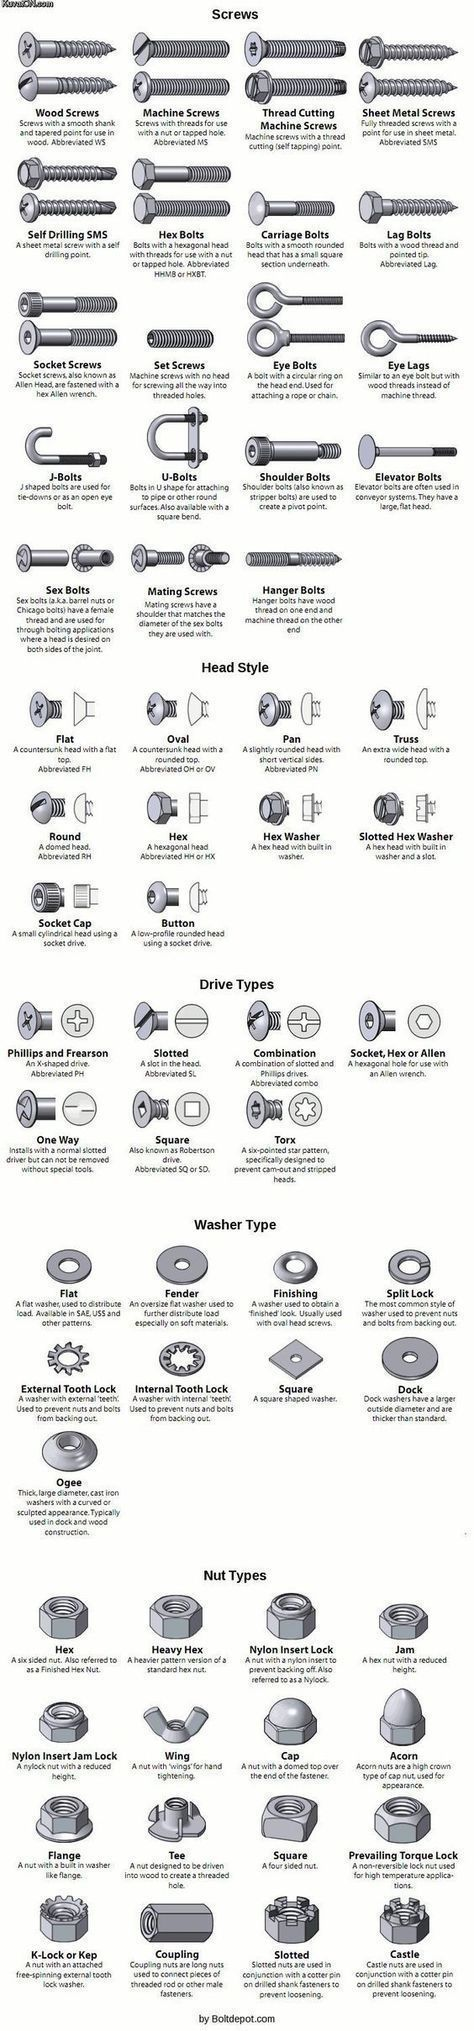 44 Best Good Info Images On Pinterest Electrical Engineering Seeking Advice For A Three Way Wiring Forum Gardenweb Types Of Screws And Bolts Guide Infographic